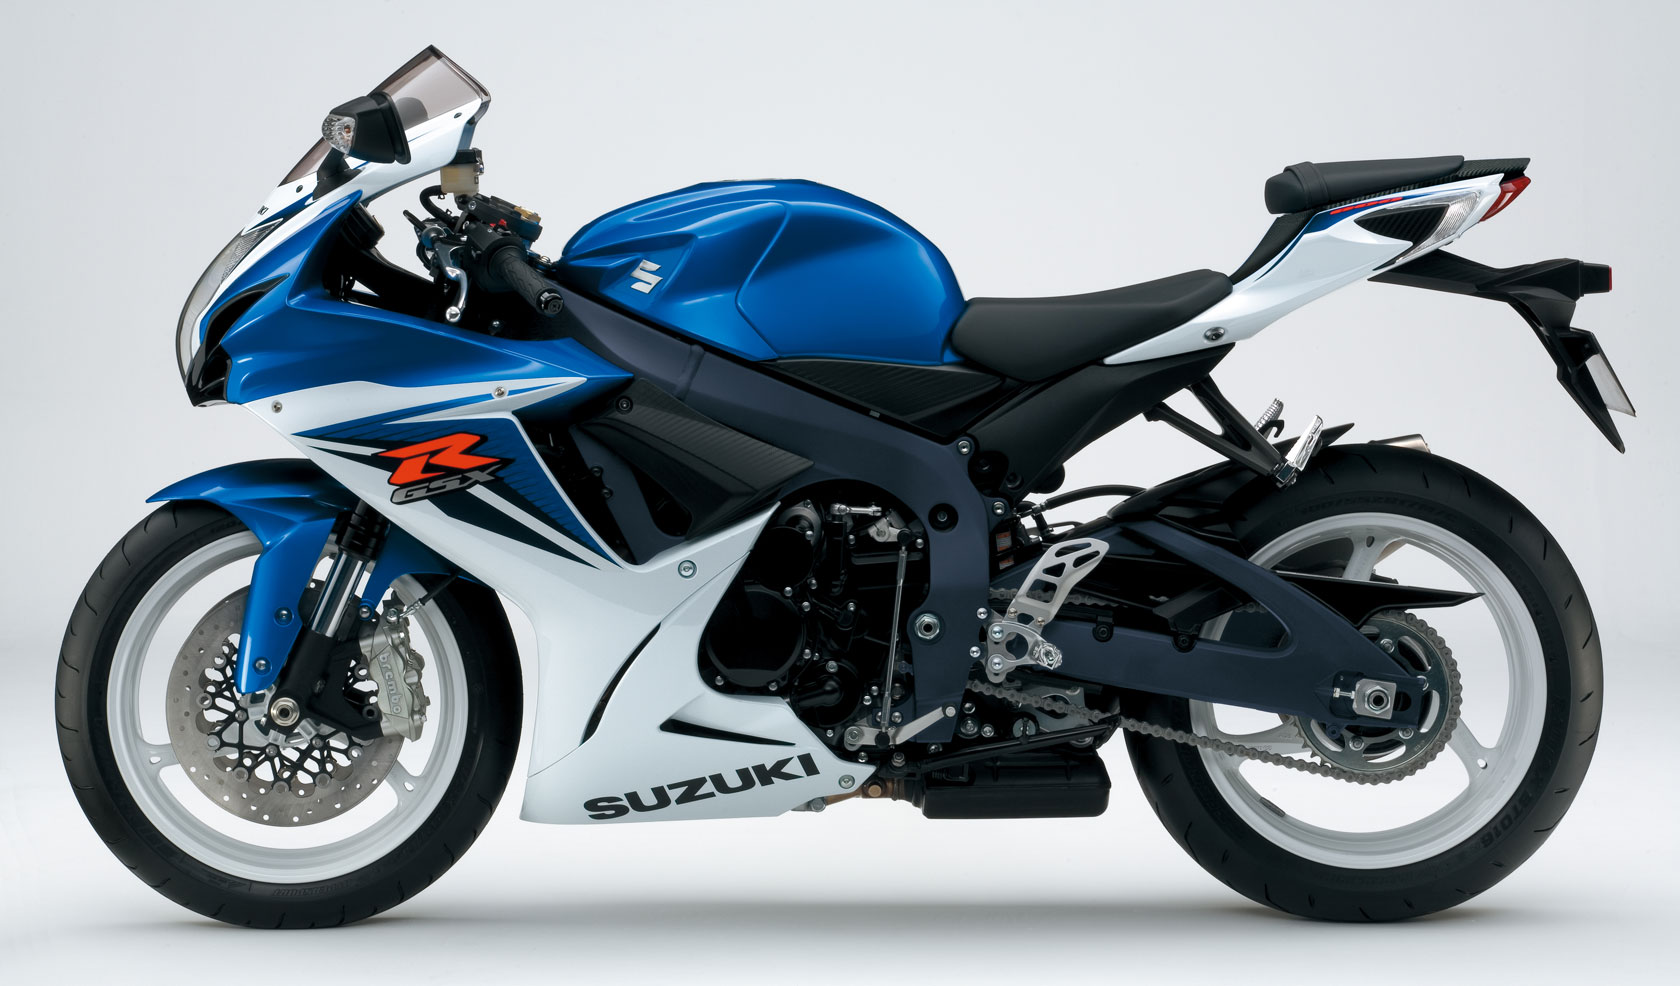 2011 suzuki gsx r 600 pics specs and information. Black Bedroom Furniture Sets. Home Design Ideas